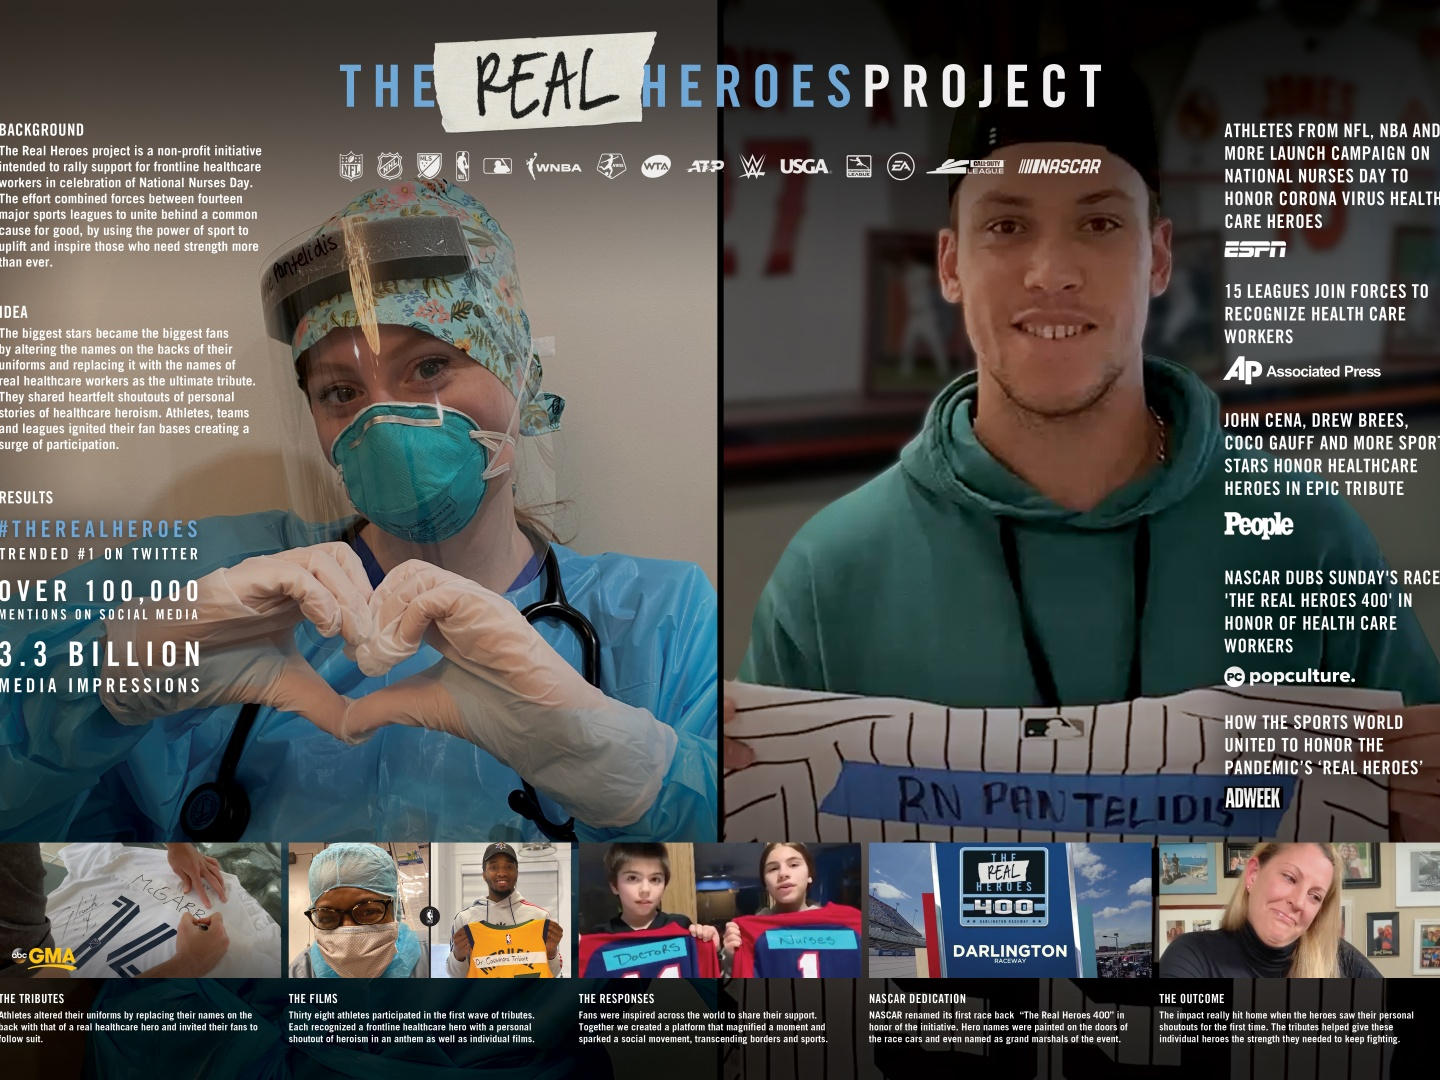 #TheRealHeroes Project Thumbnail